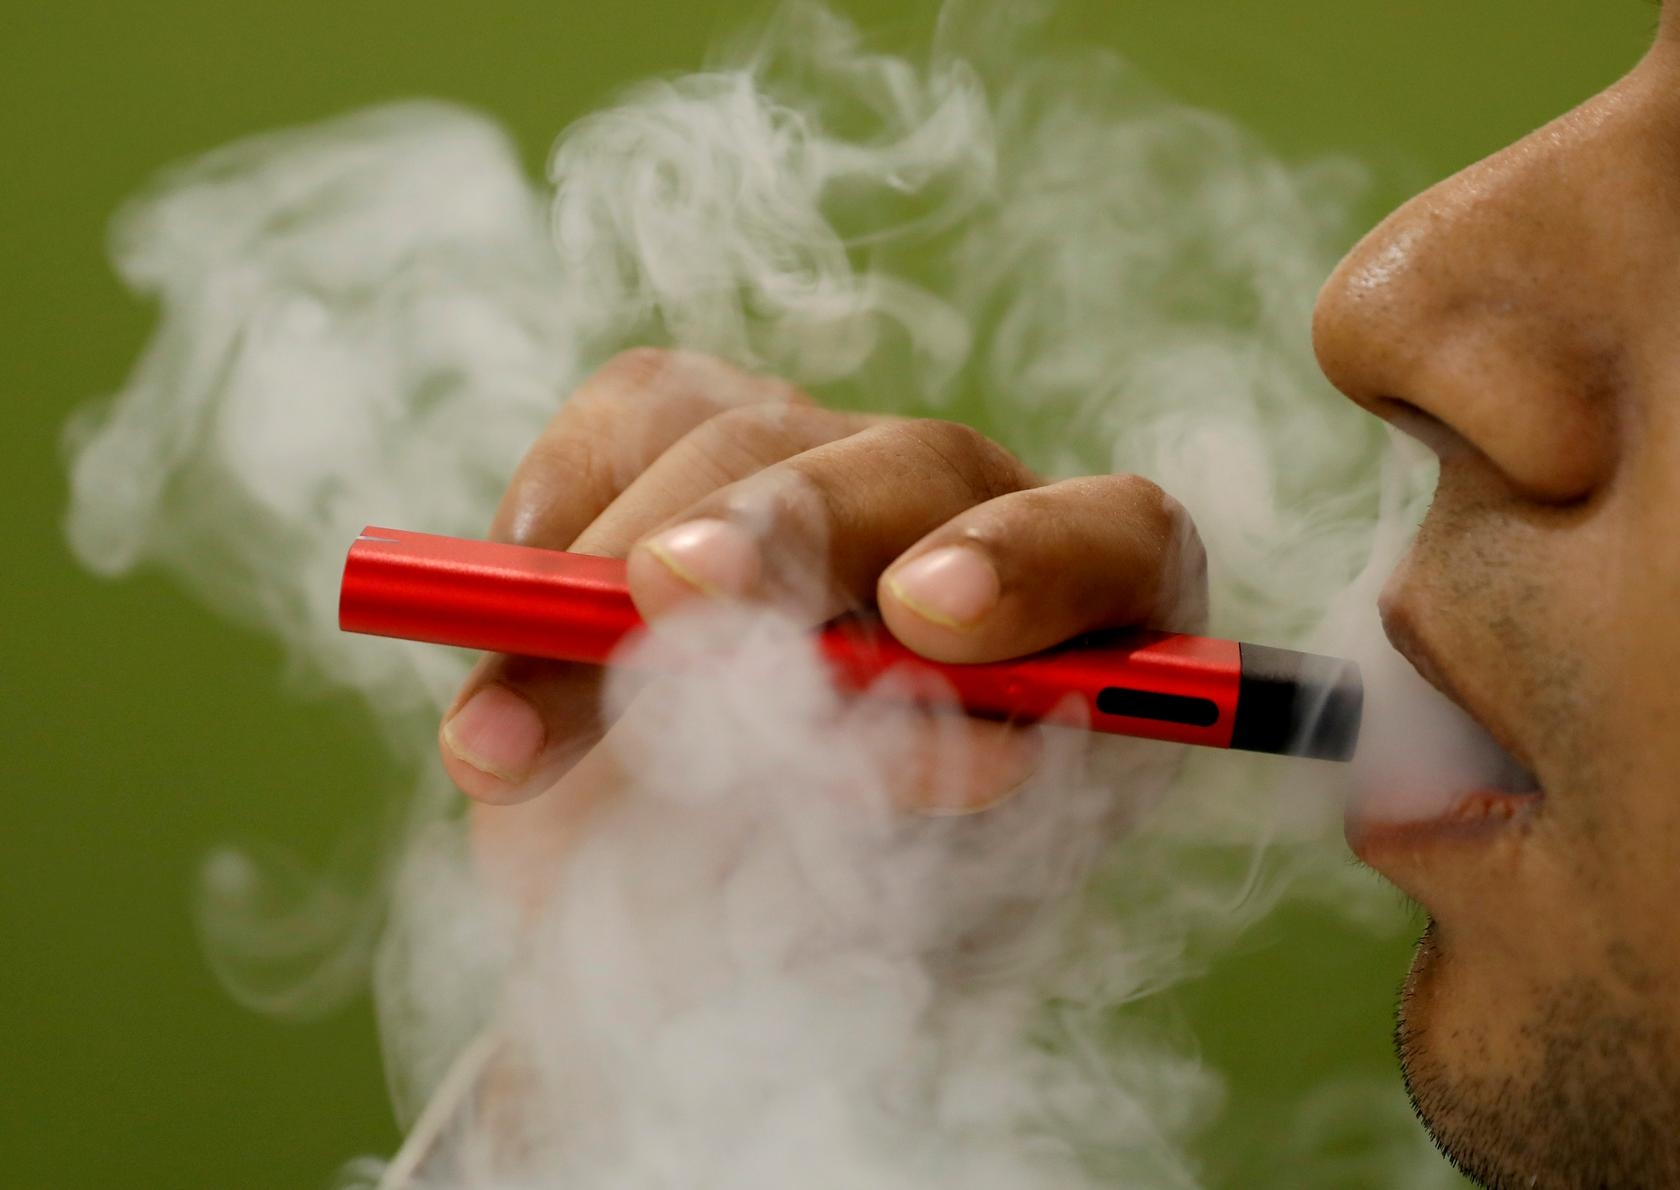 US vaping-related deaths rise to 42, cases of illness to 2,172